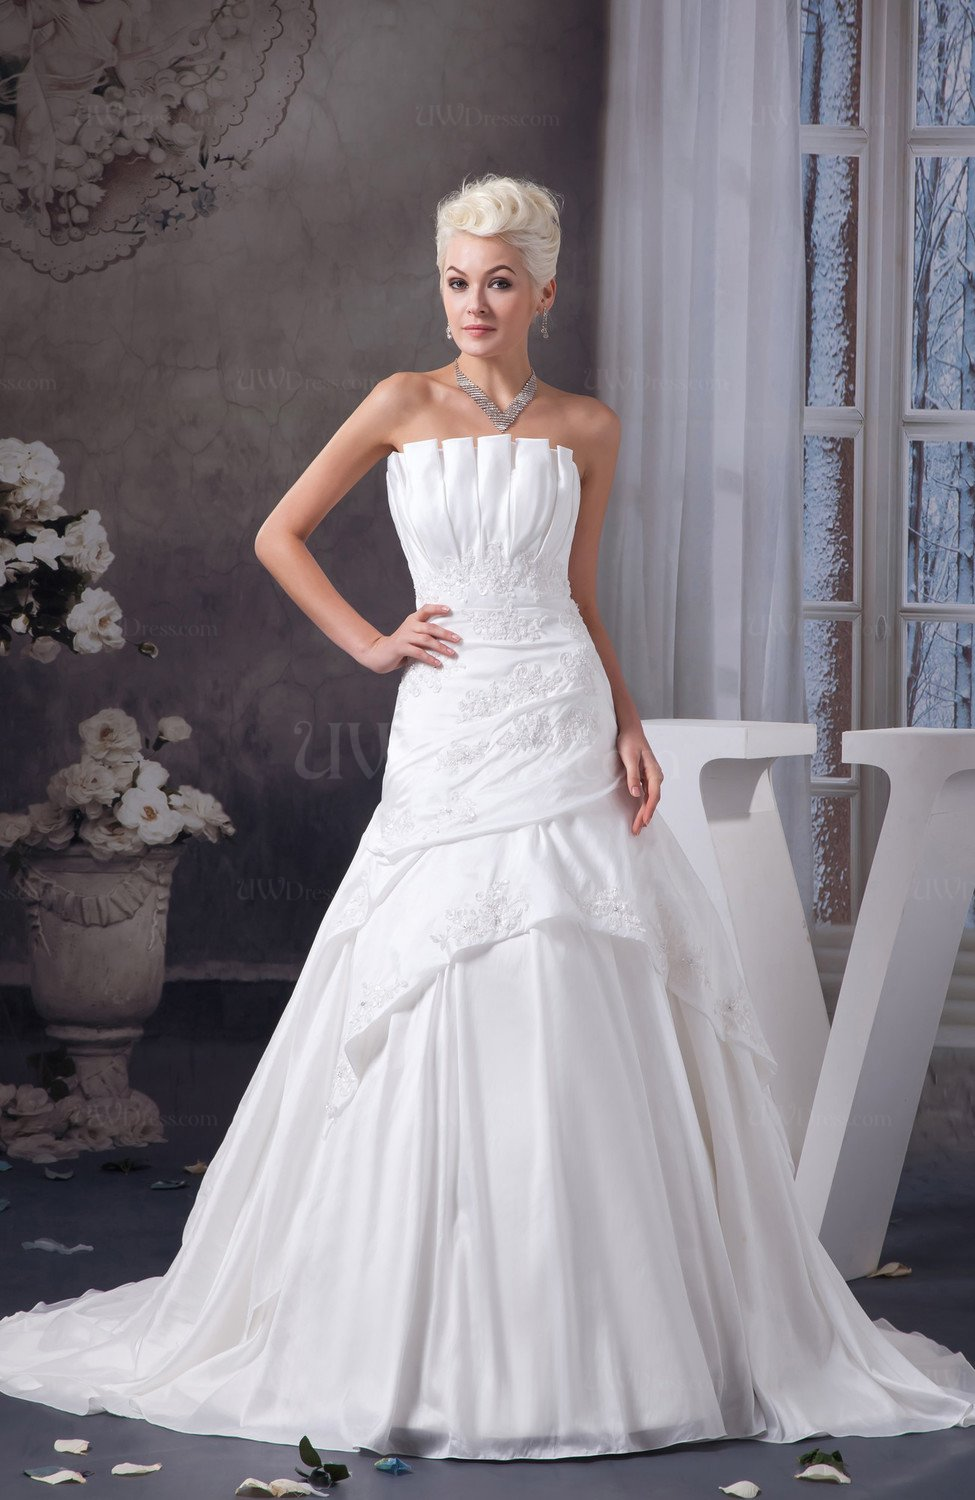 White Allure Bridal Gowns Sexy Plus Size Summer Formal